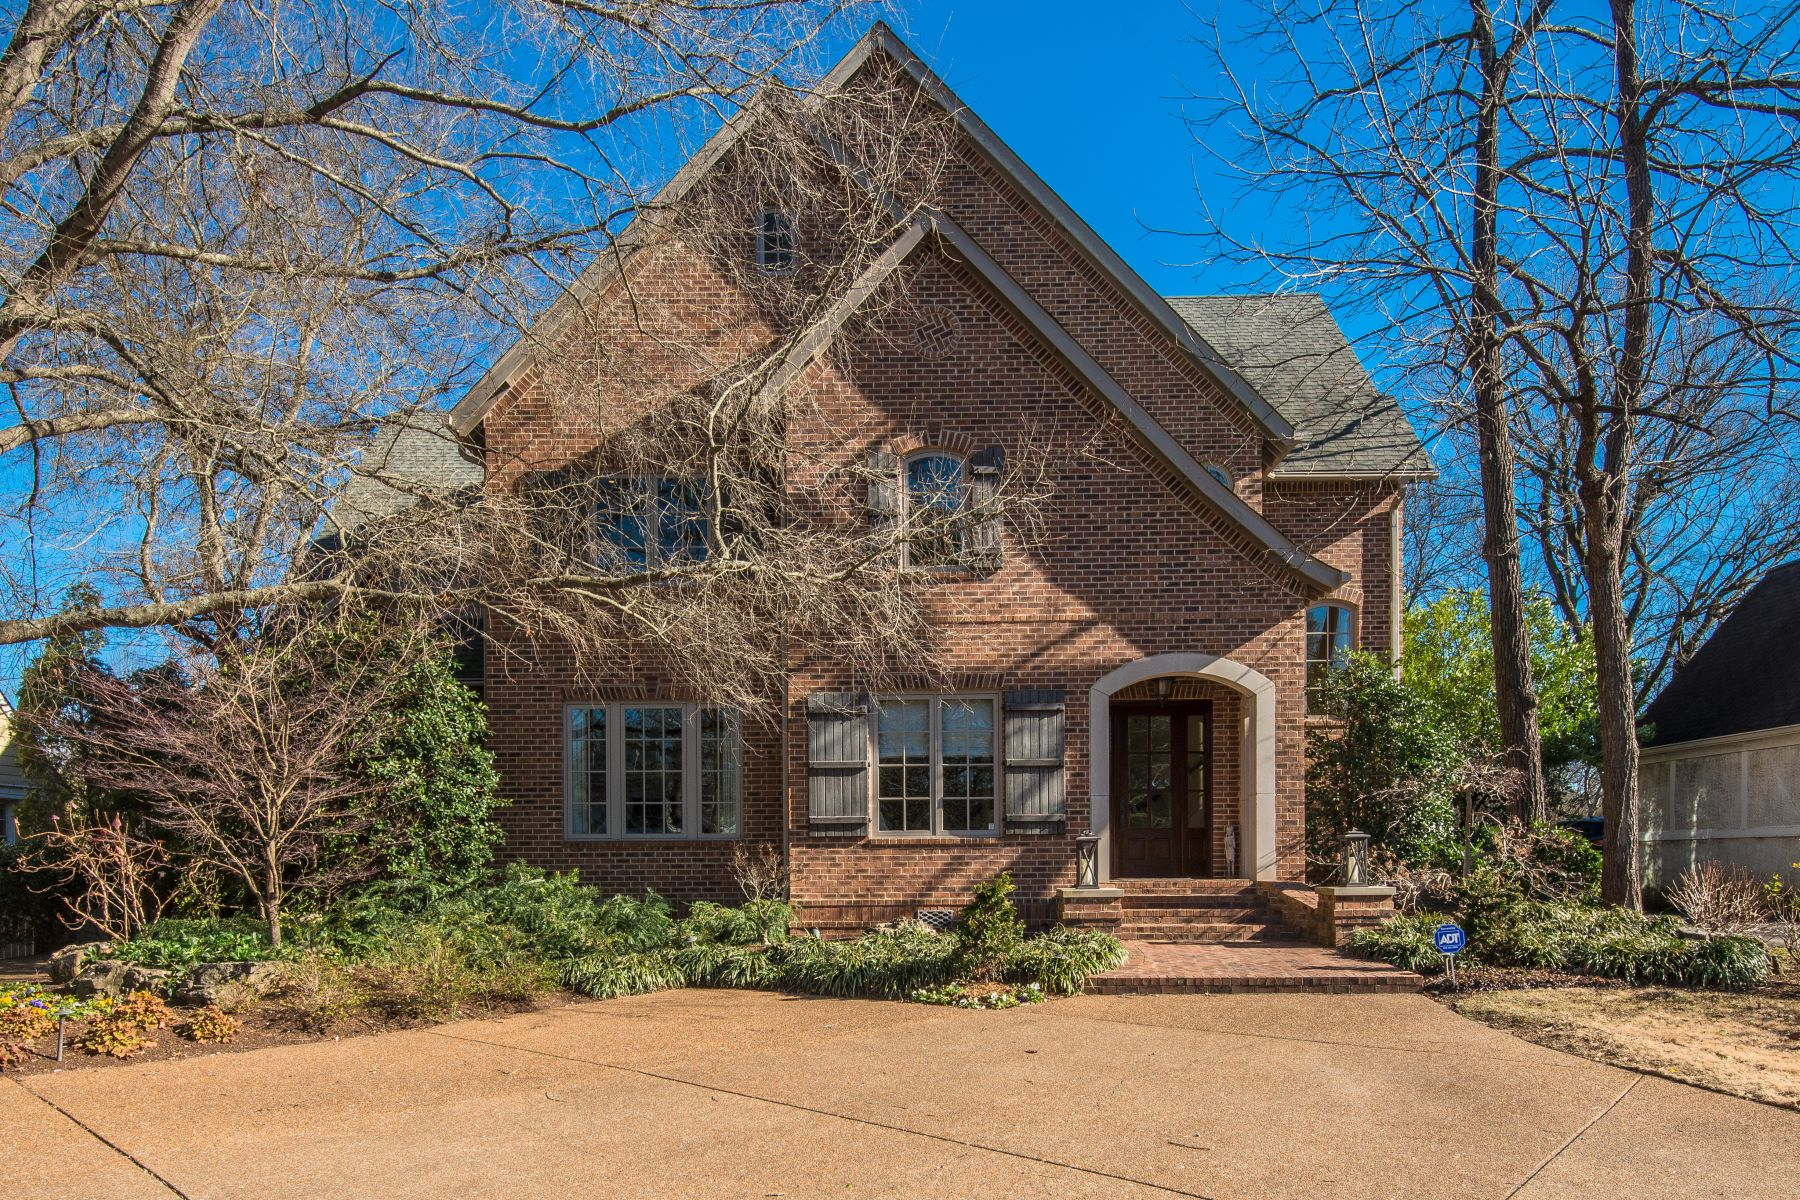 Single Family Home for Sale at Elegant and Charming Home in Upscale Green Hills/West End Area 904 Estes Road Nashville, Tennessee 37215 United States